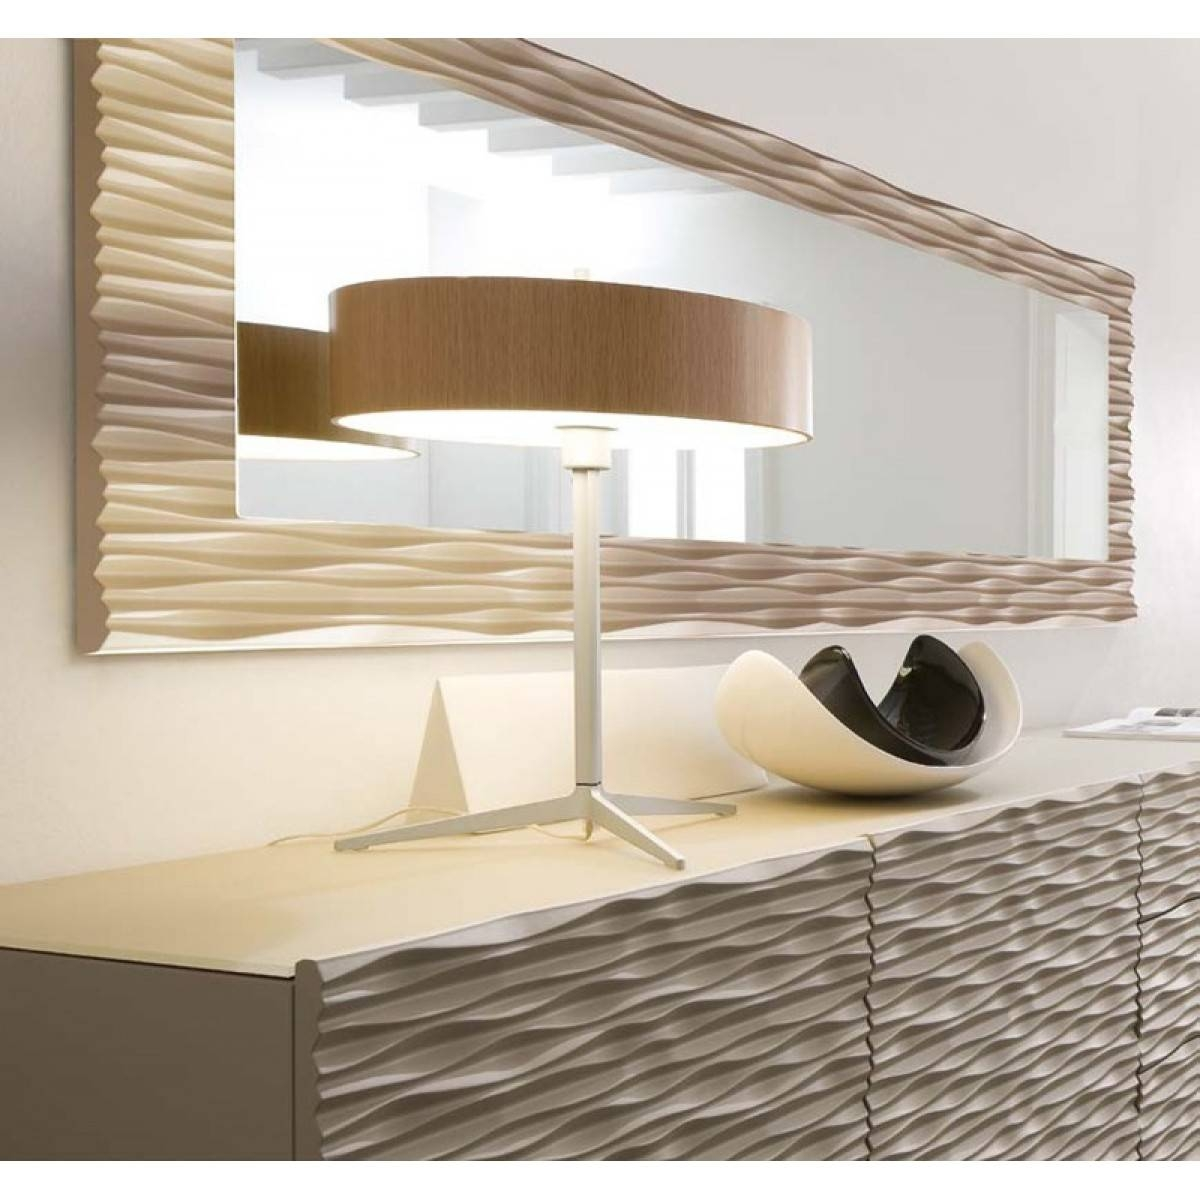 Extra Large Wall Mirrors – Harpsounds.co intended for Large Wall Mirrors (Image 12 of 25)